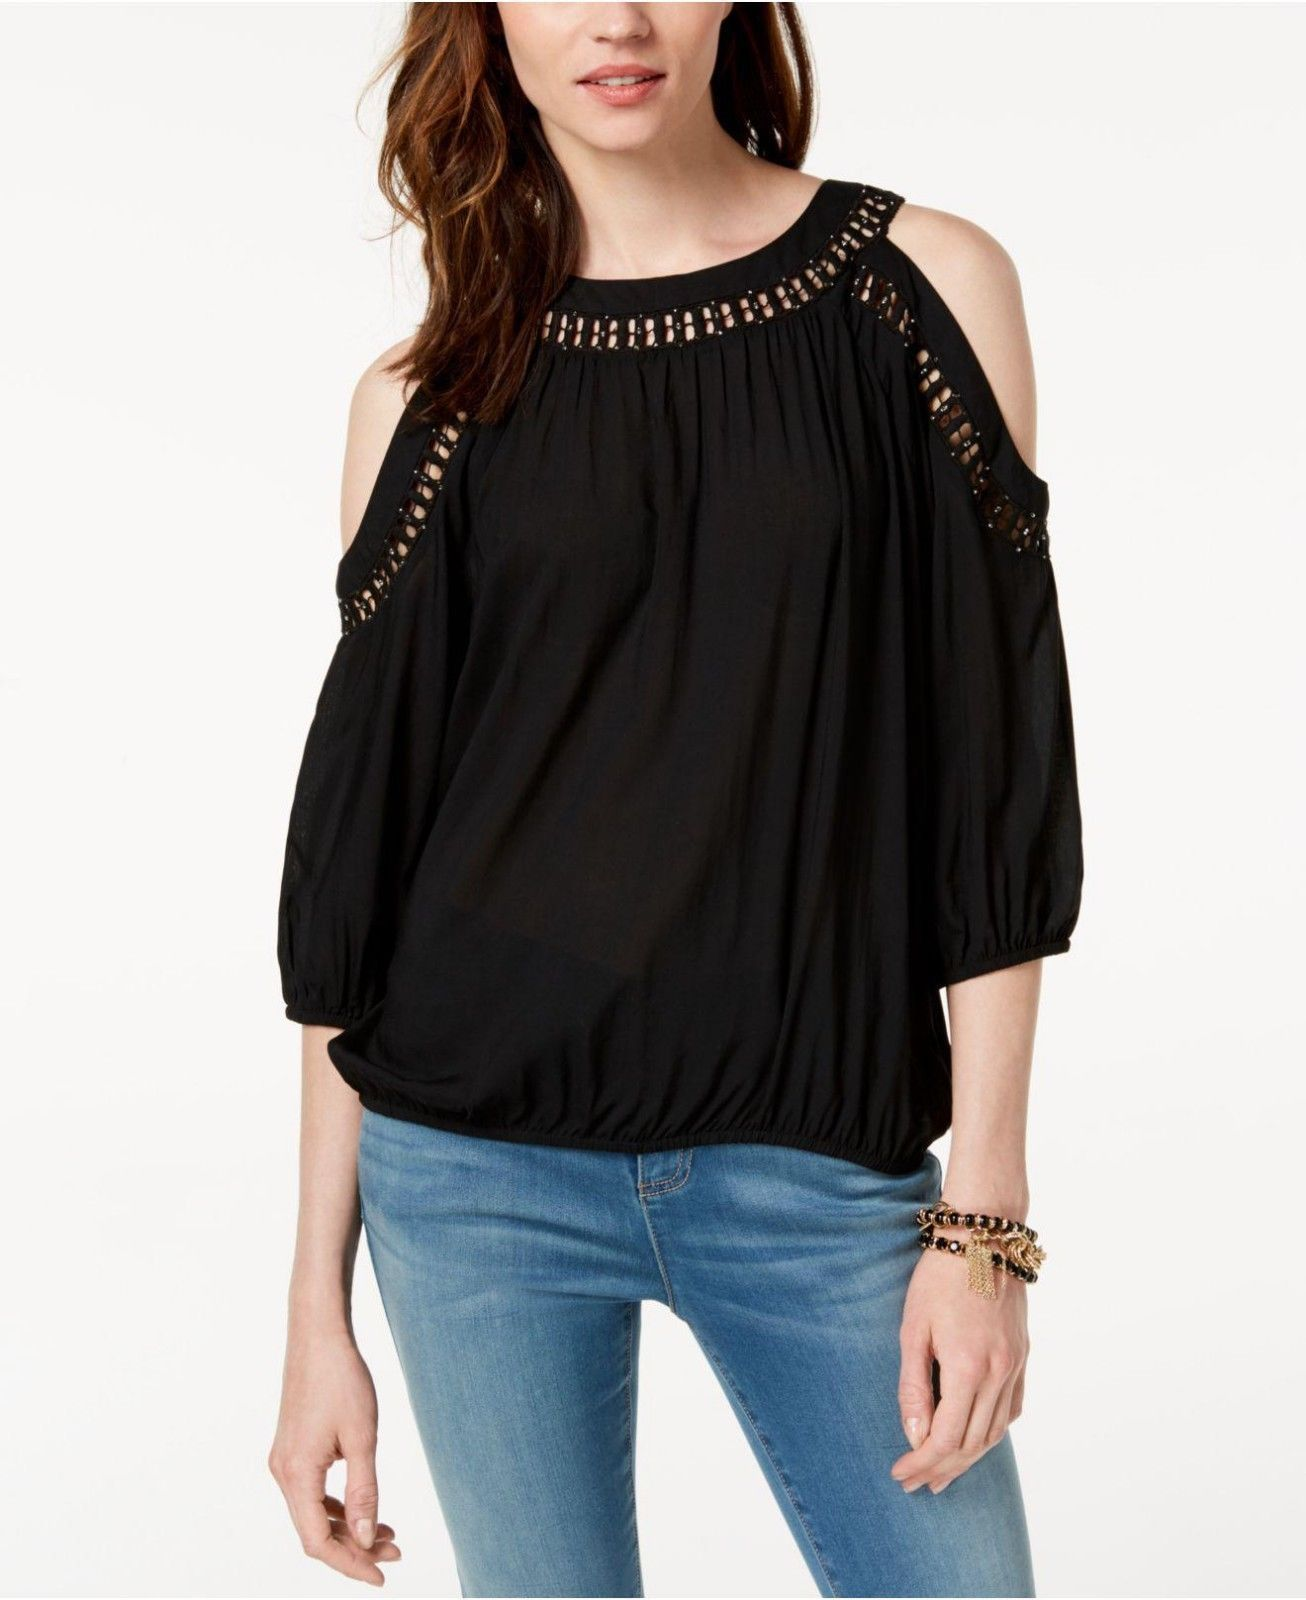 c540280ad00969 INC International Concepts Women s Cold-Shoulder Top (L